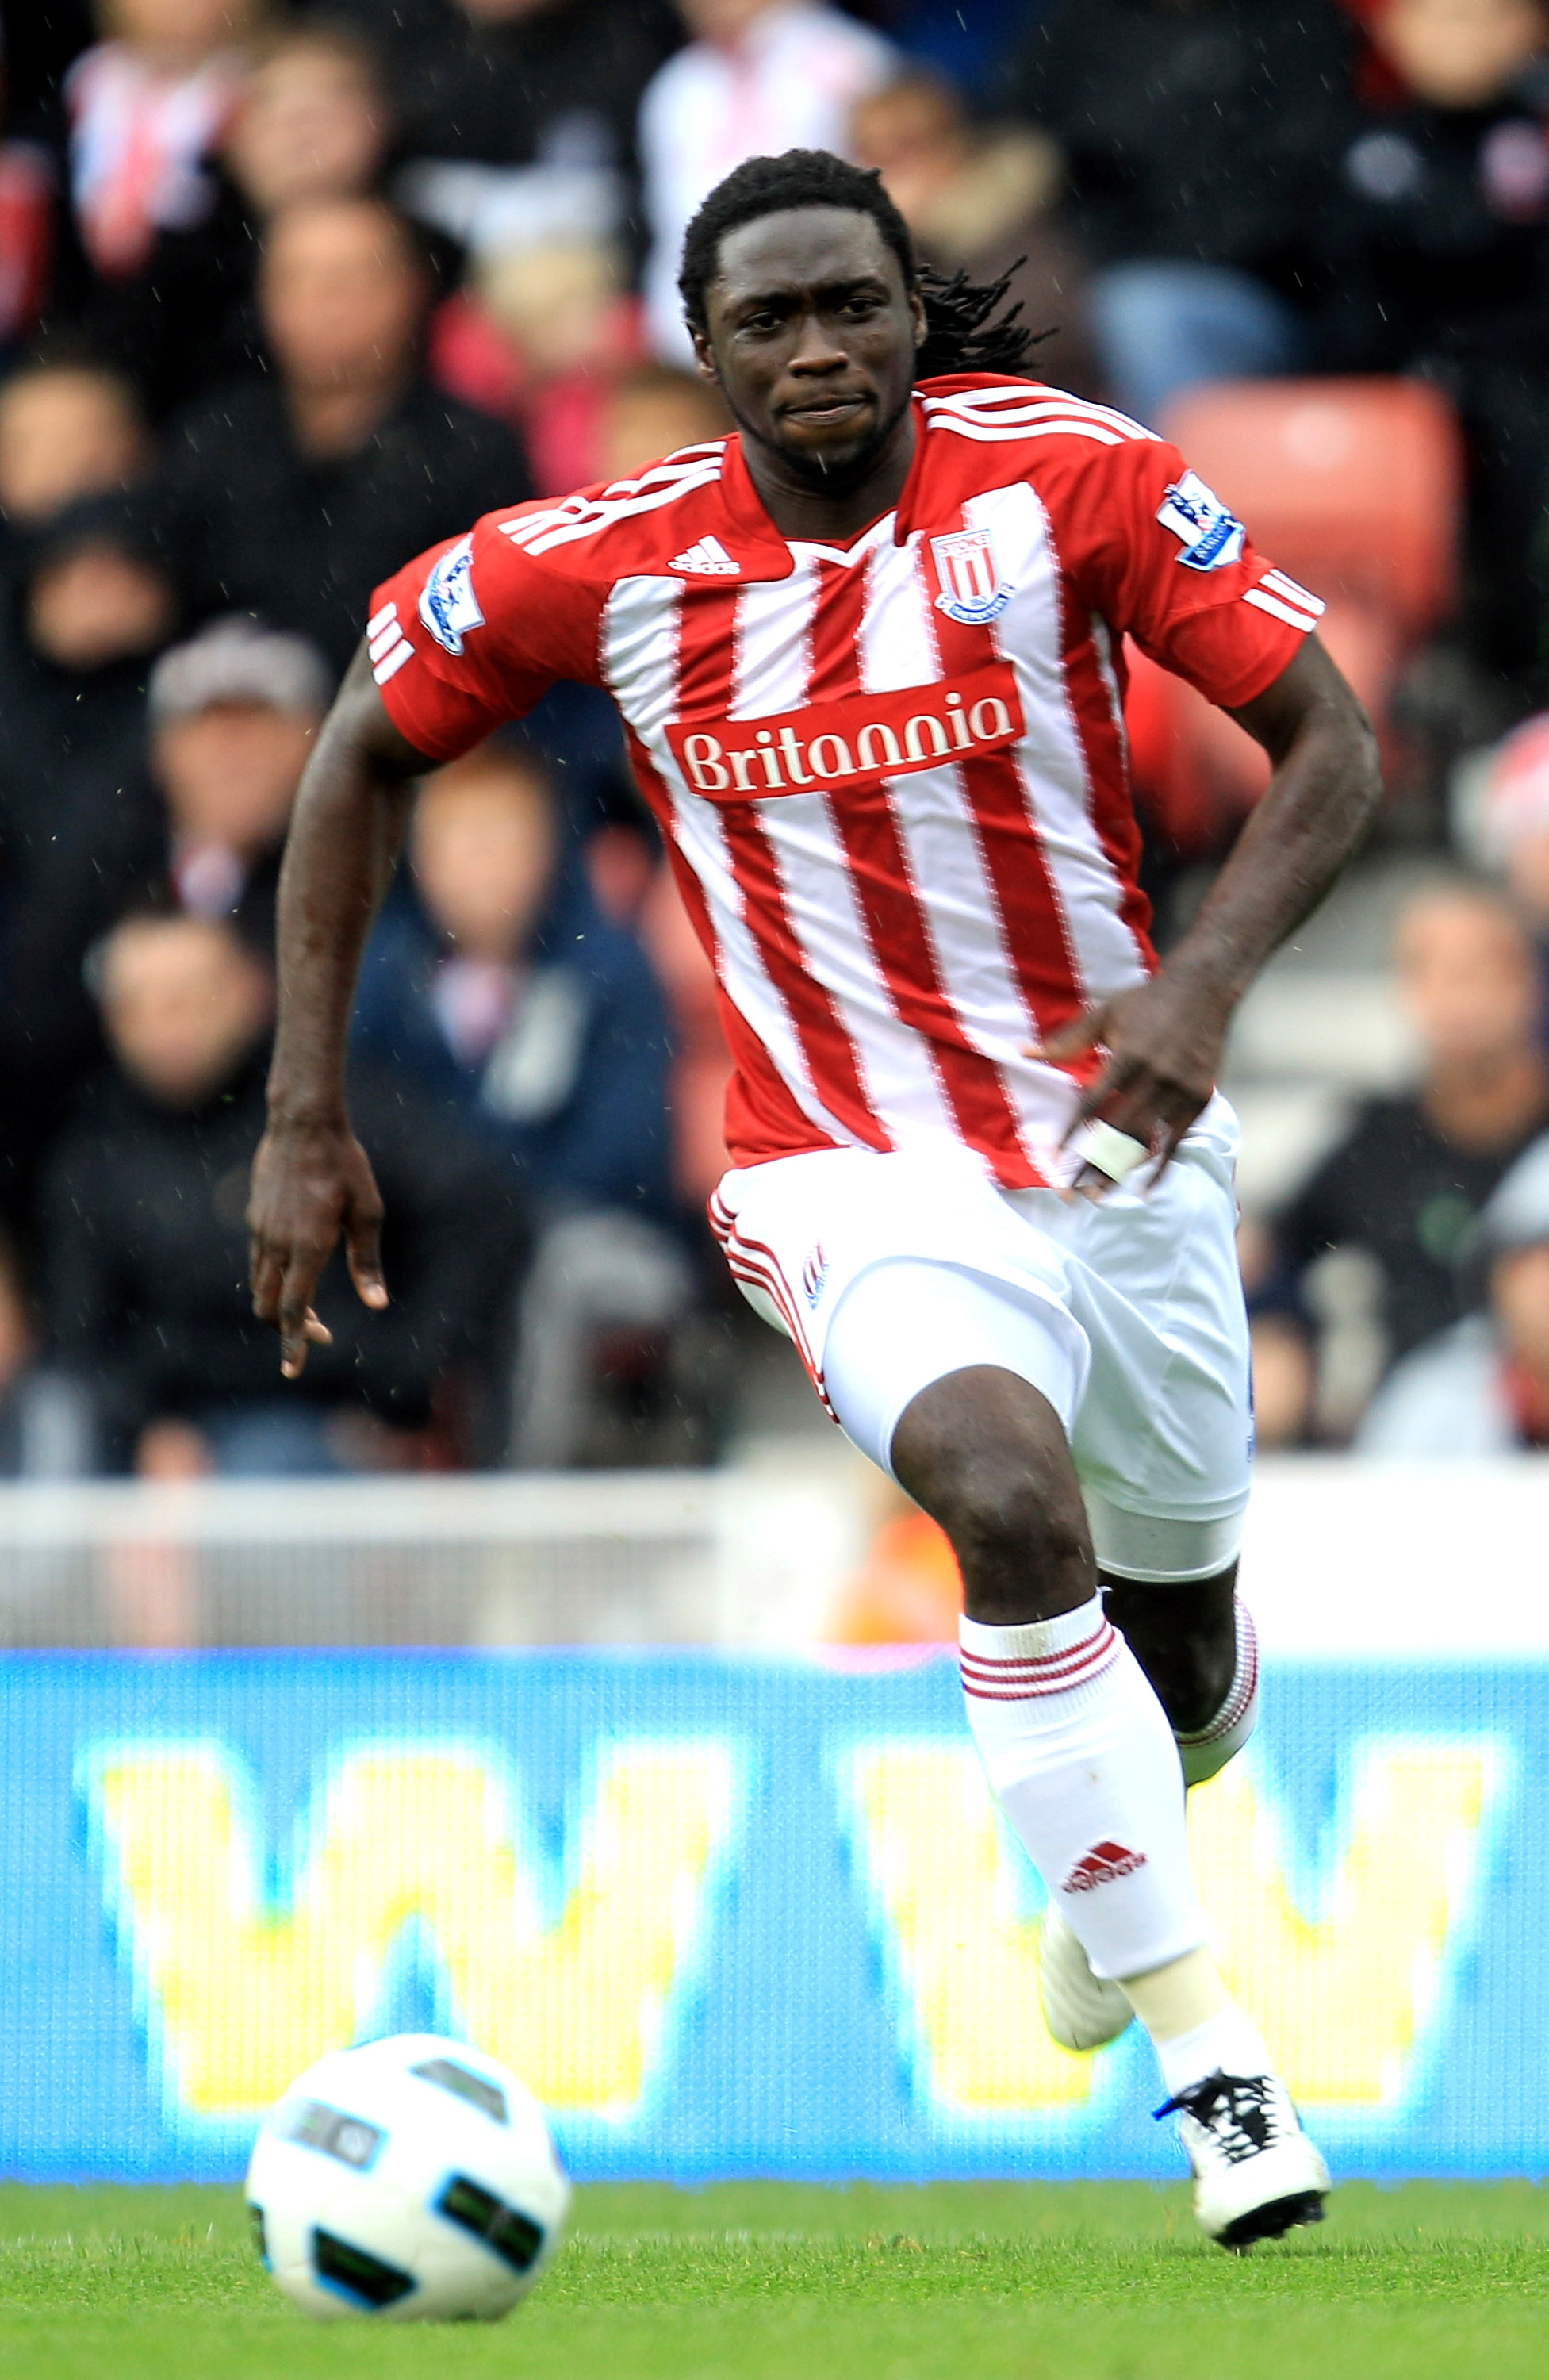 STOKE ON TRENT, ENGLAND - SEPTEMBER 18:  Kenwyne Jones of Stoke City in action during the Barclays Premier League match between Stoke City and West Ham United at the Britannia Stadium on September 18, 2010 in Stoke on Trent, England.  (Photo by Mark Thomp